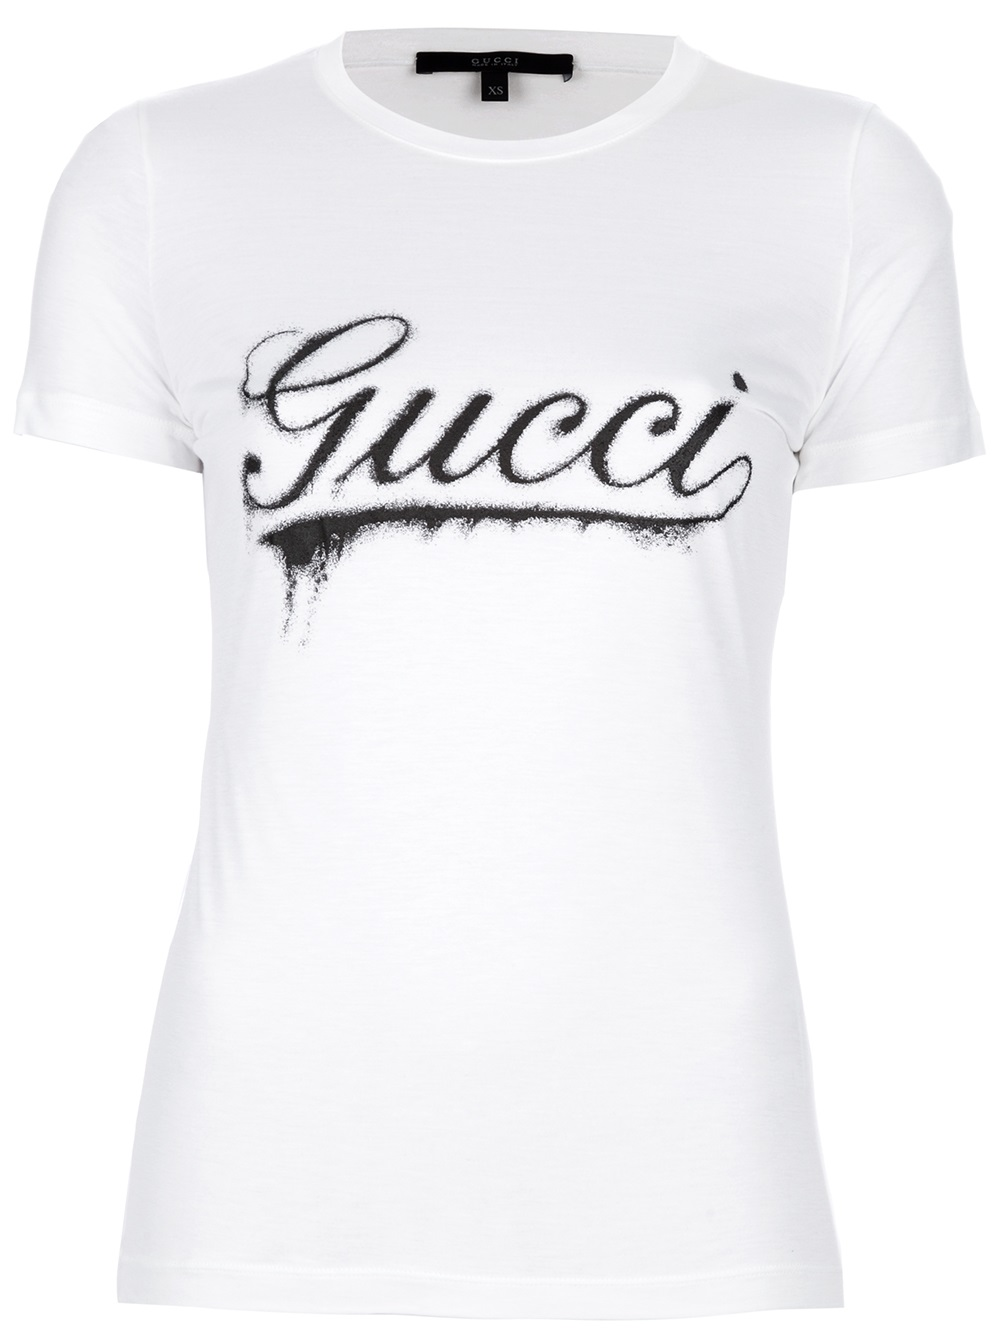 Lyst gucci logo print tshirt in black for Tee shirt logo printing